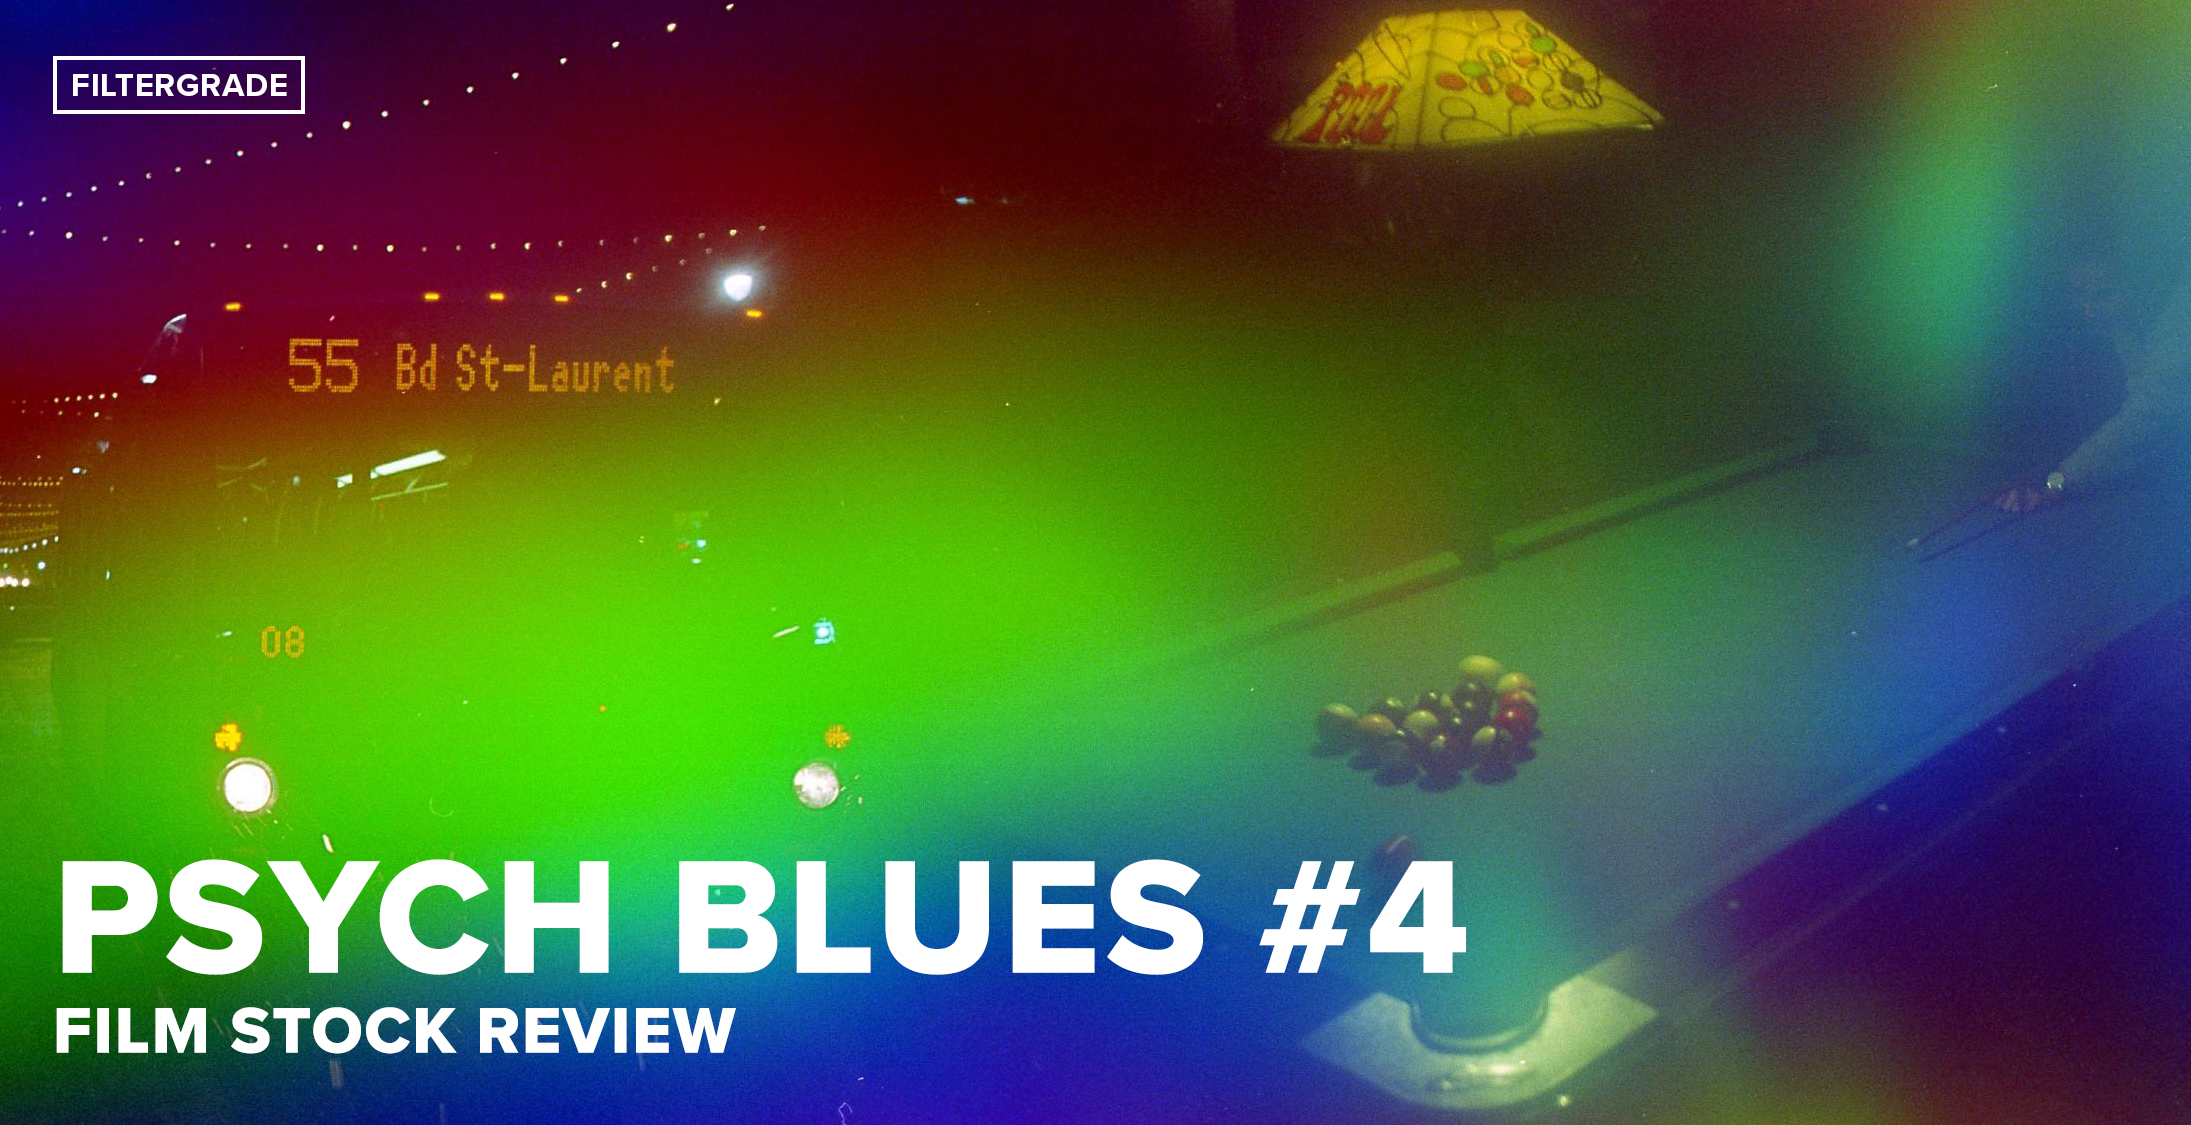 Psych-Blues-4-Film-Stock-Review-FilterGrade